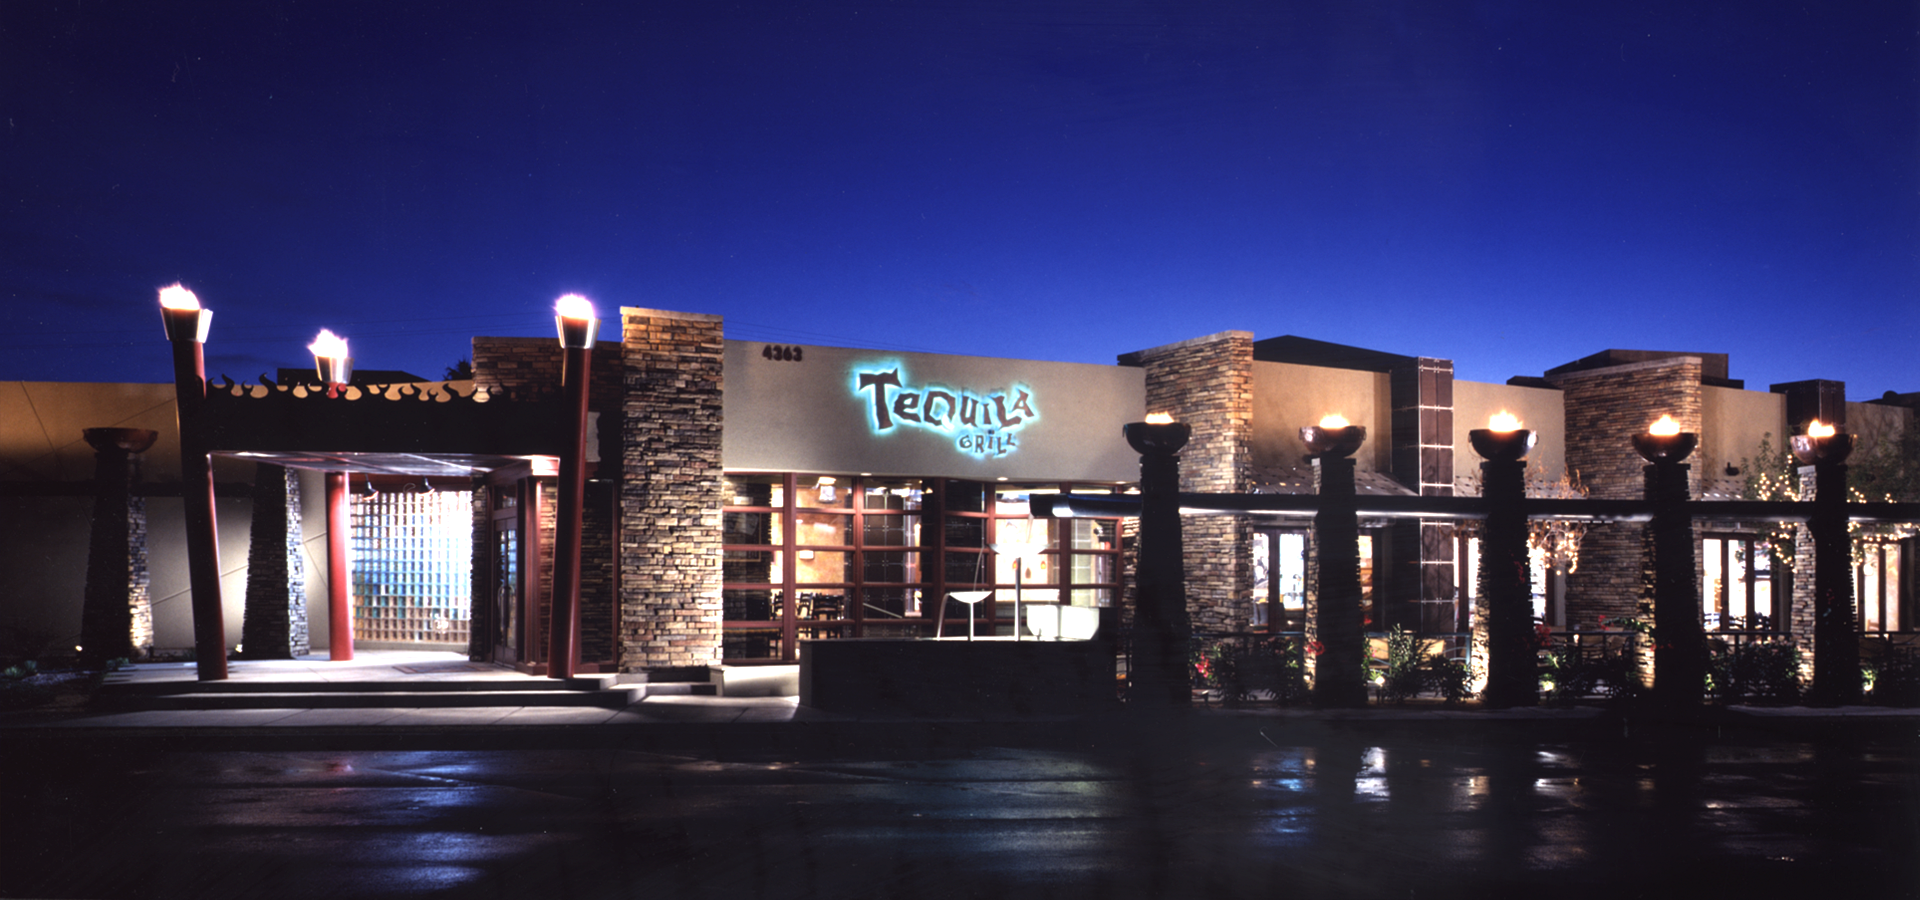 Tequila Grill exterior